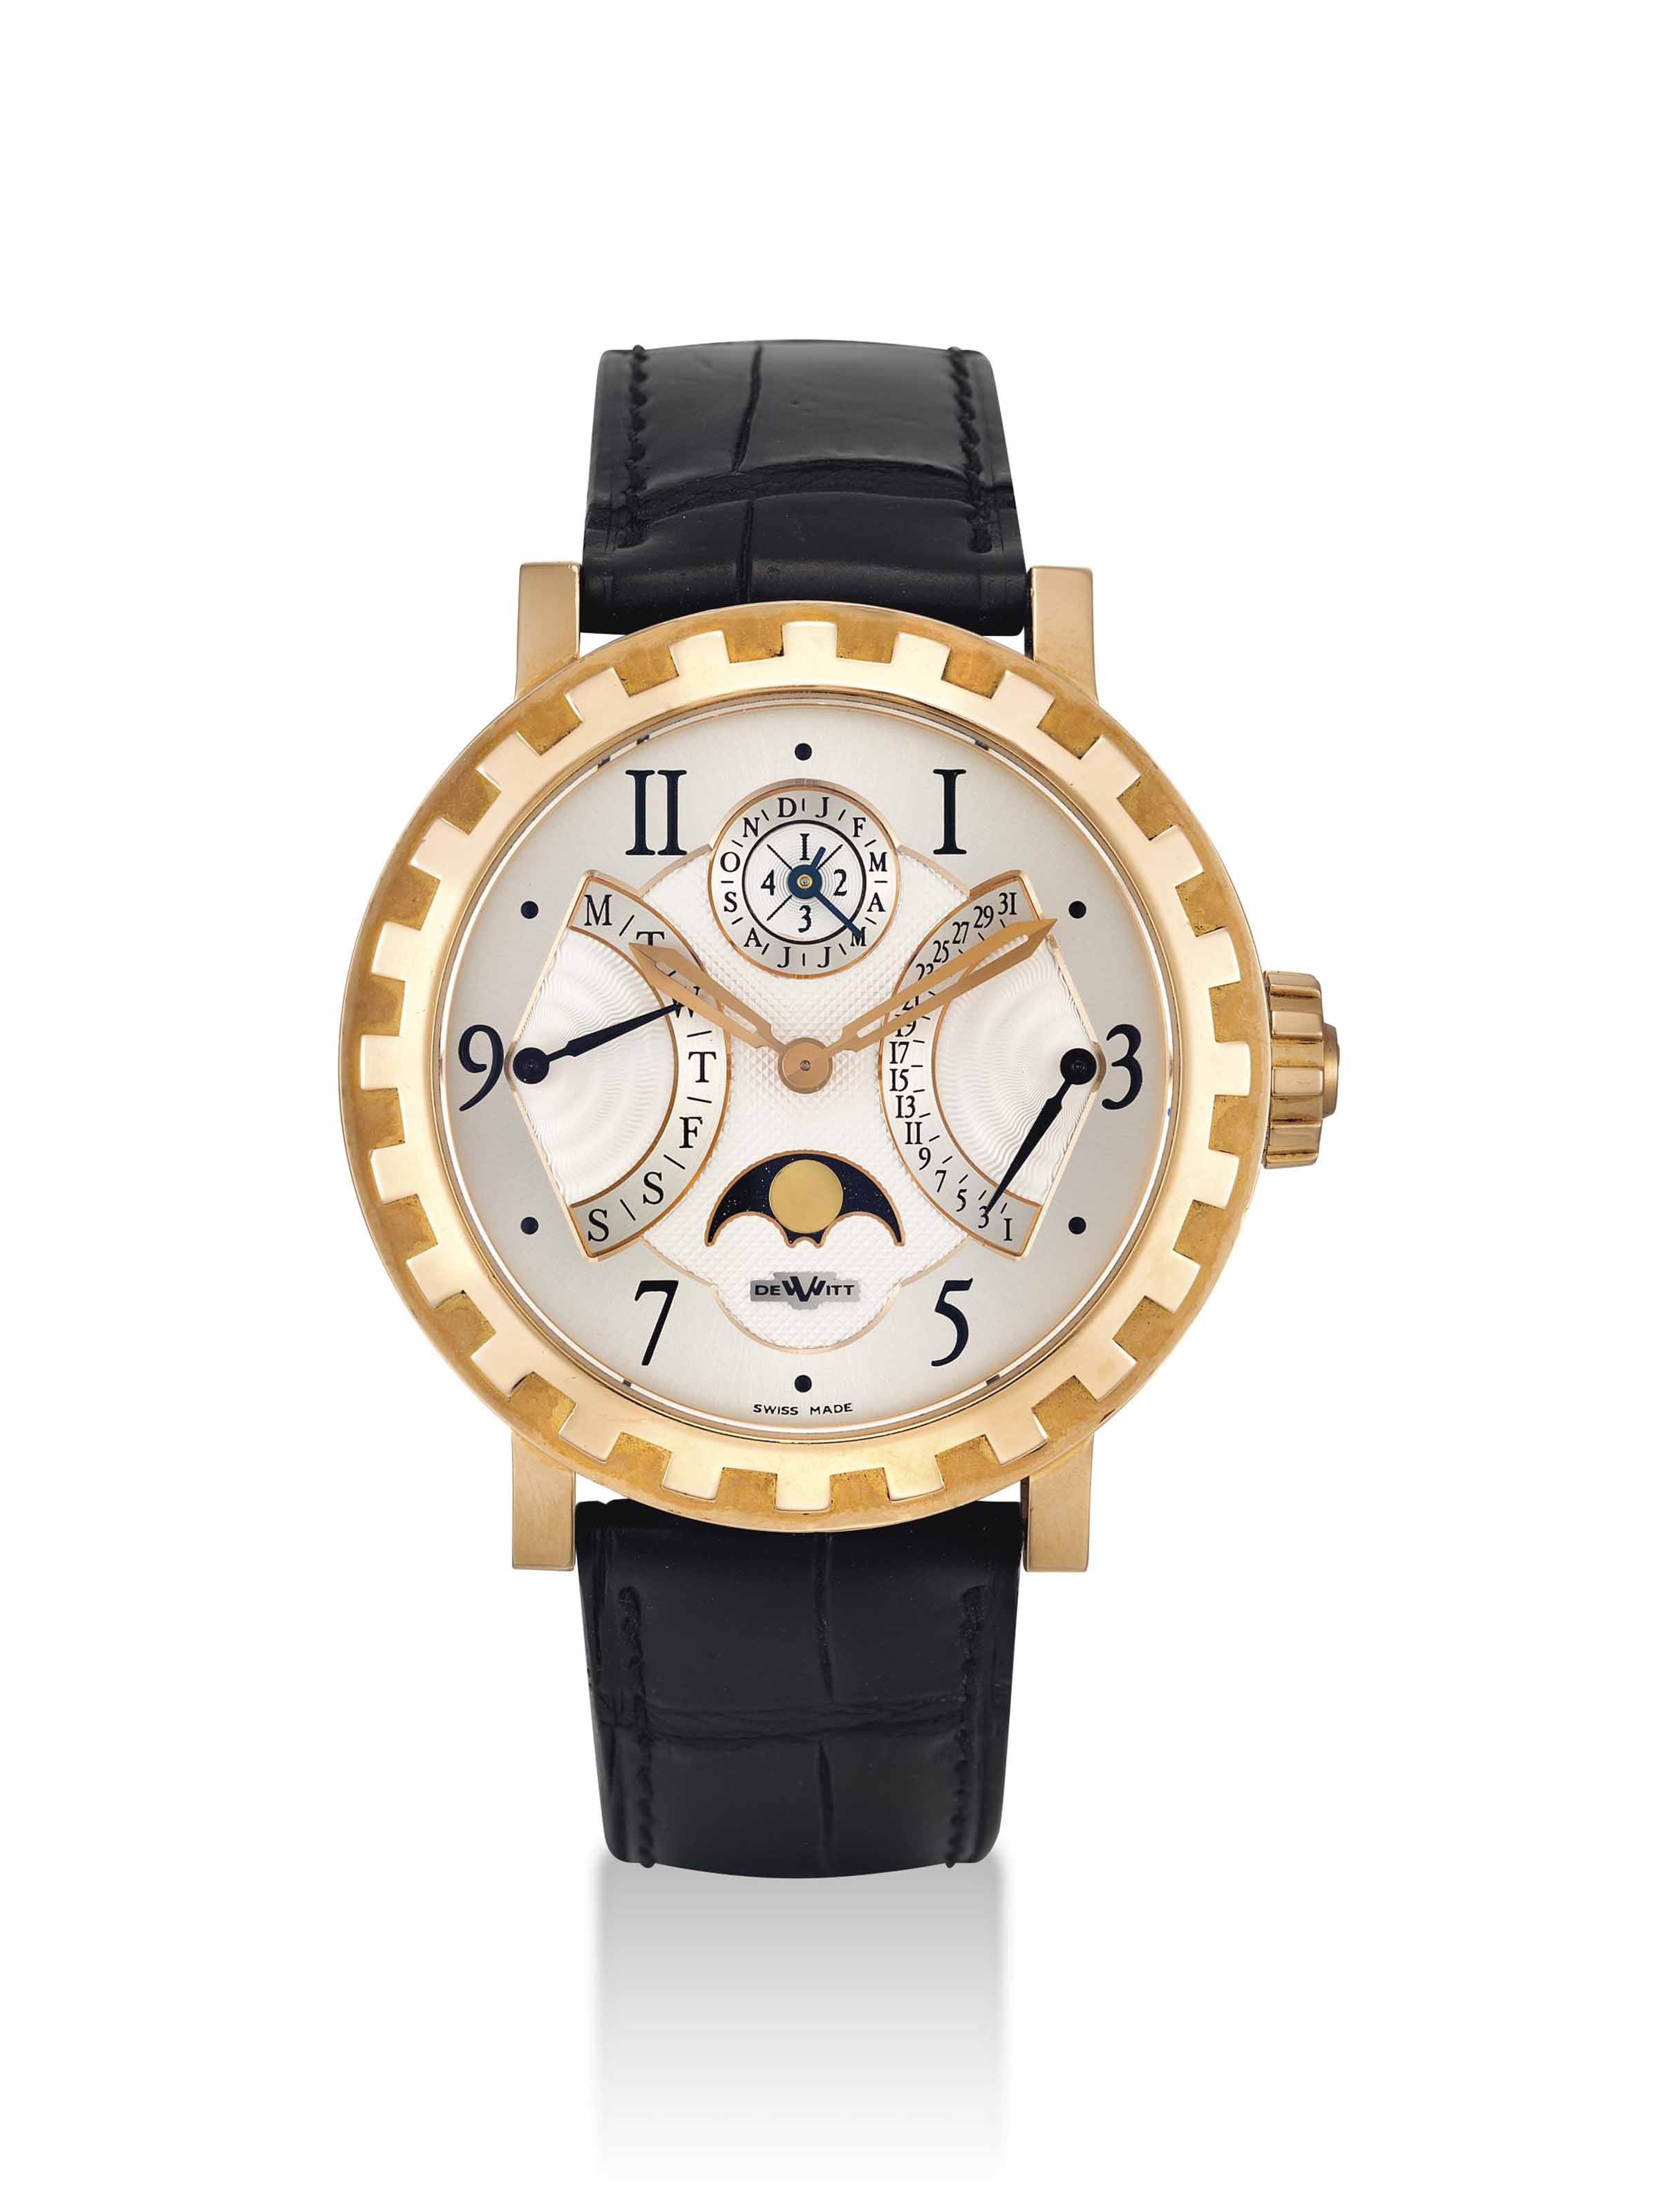 DEWITT. A FINE 18K PINK GOLD LIMITED EDITION AUTOMATIC PERPETUAL CALENDAR WRISTWATCH WITH BI-RETROGRADE DATE AND DAY, MOON PHASES AND LEAP YEAR INDICATION